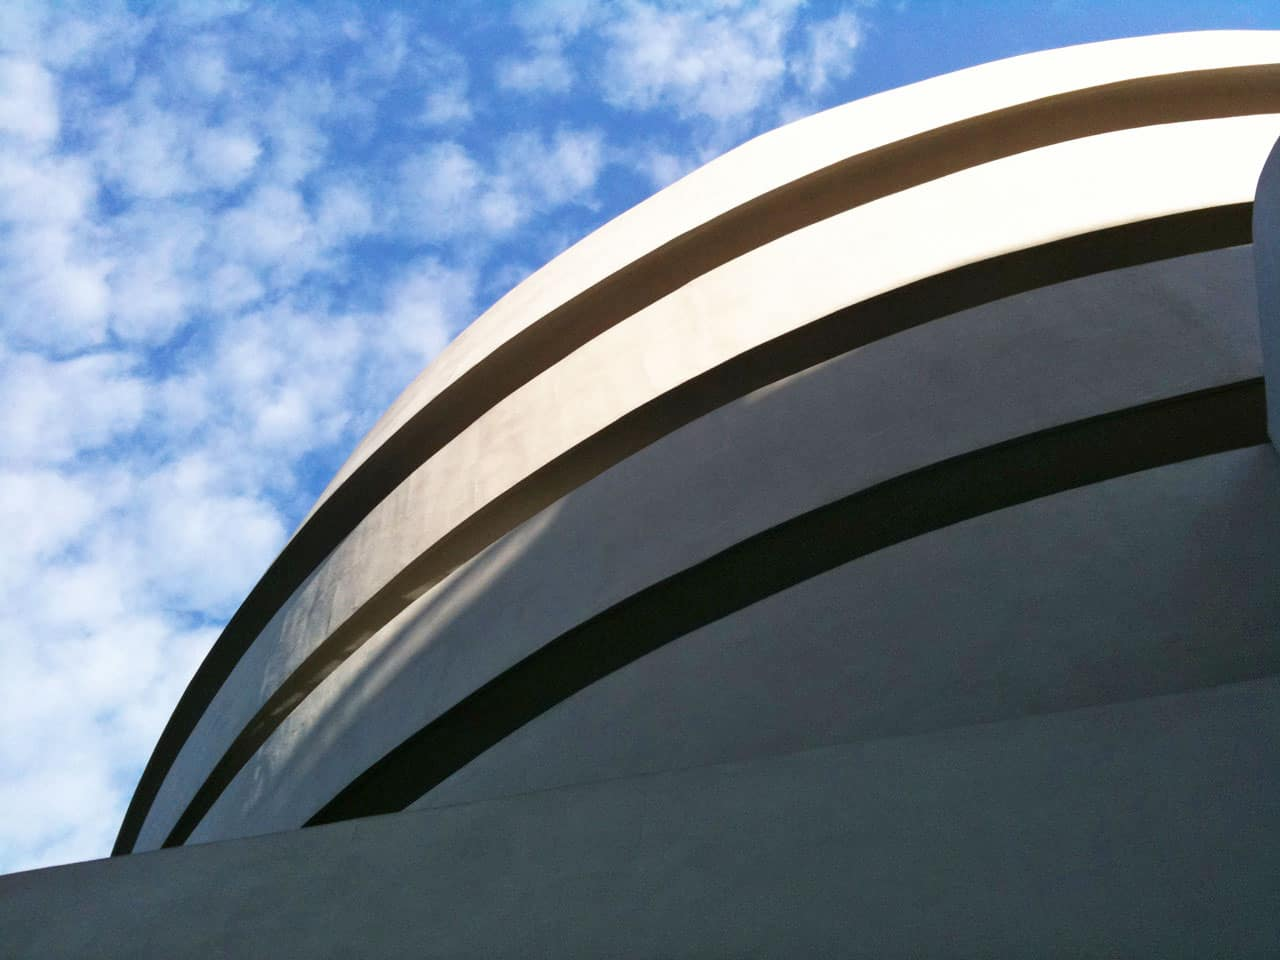 Guggenheim-Museum The Guggenheim Museum in New York | Frank Lloyd Wright